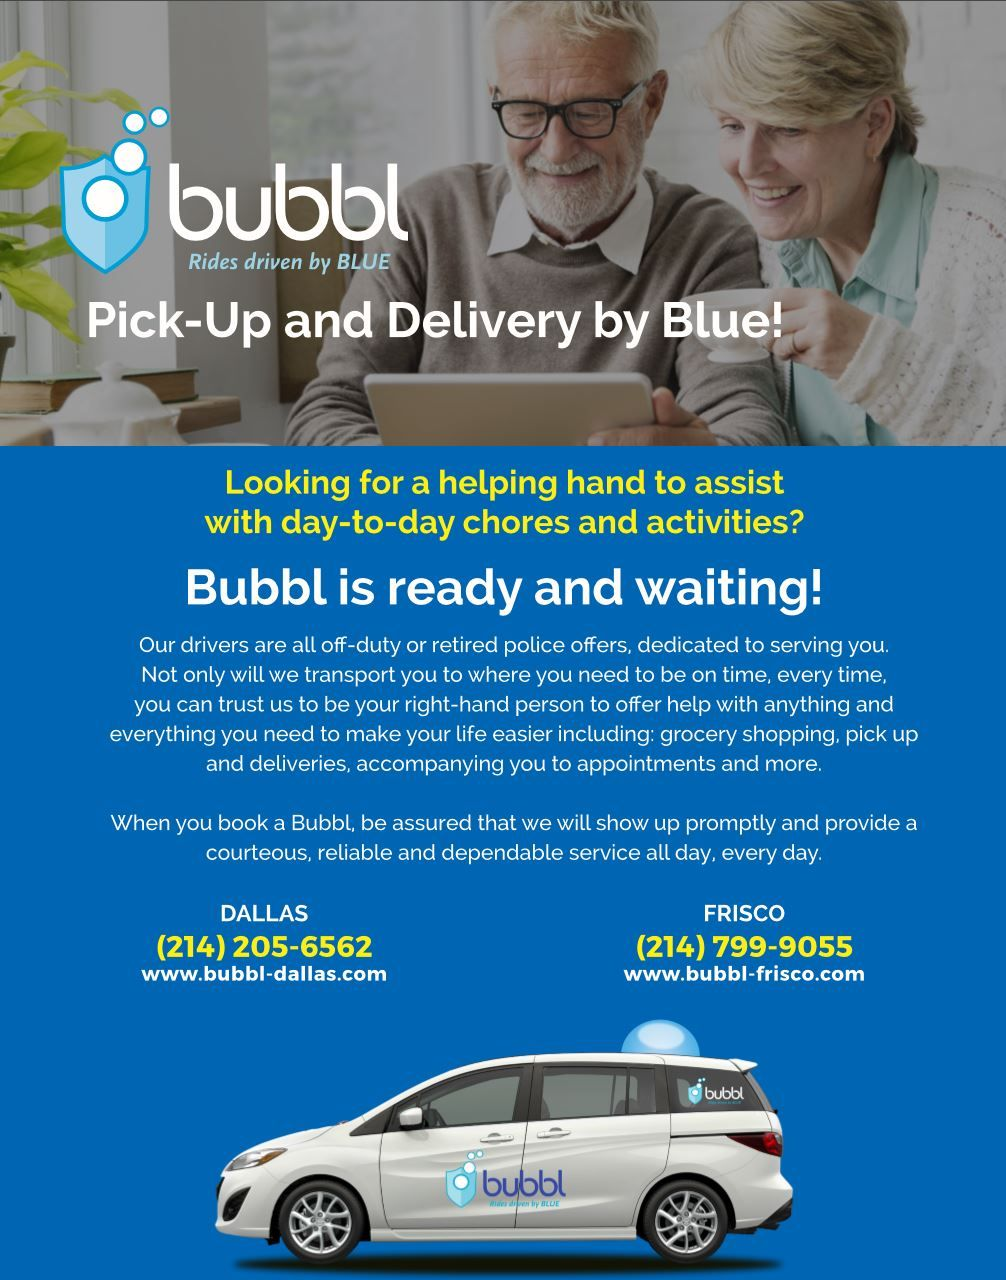 Brand New Service Bubbl PickUp and Delivery! Police